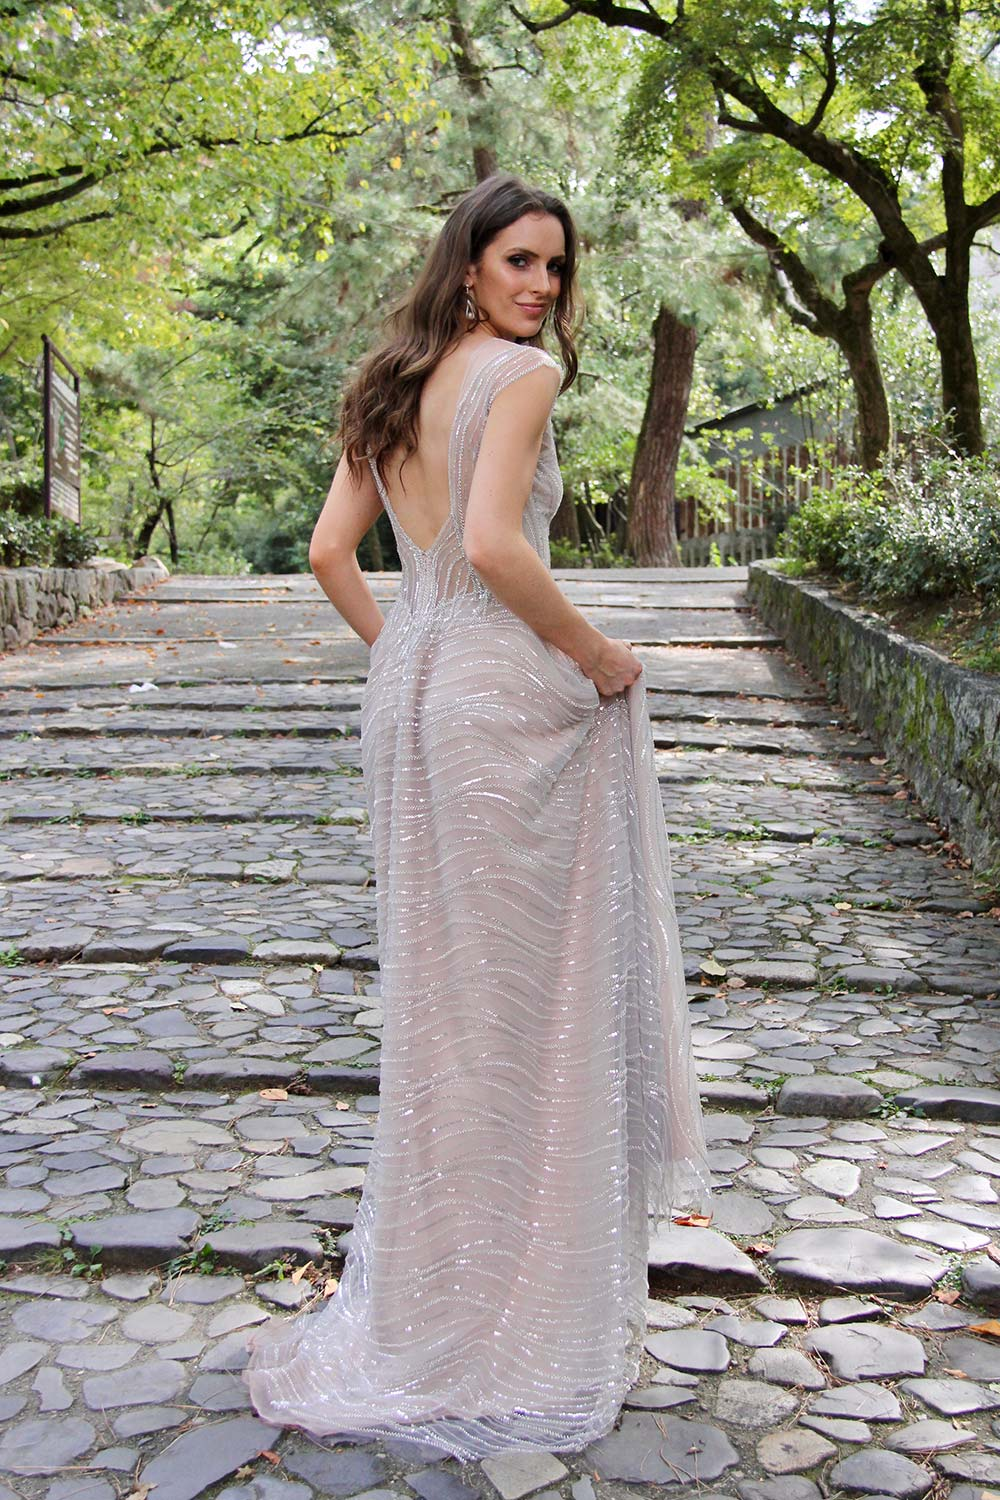 Female model wearing Vinka Design An Oriental Affair Wedding Dress. On a walkway in the japanese forest the back detail of a high illusion neckline with a richly beaded silver-lined bodice and low sheer lace back on a blush base.